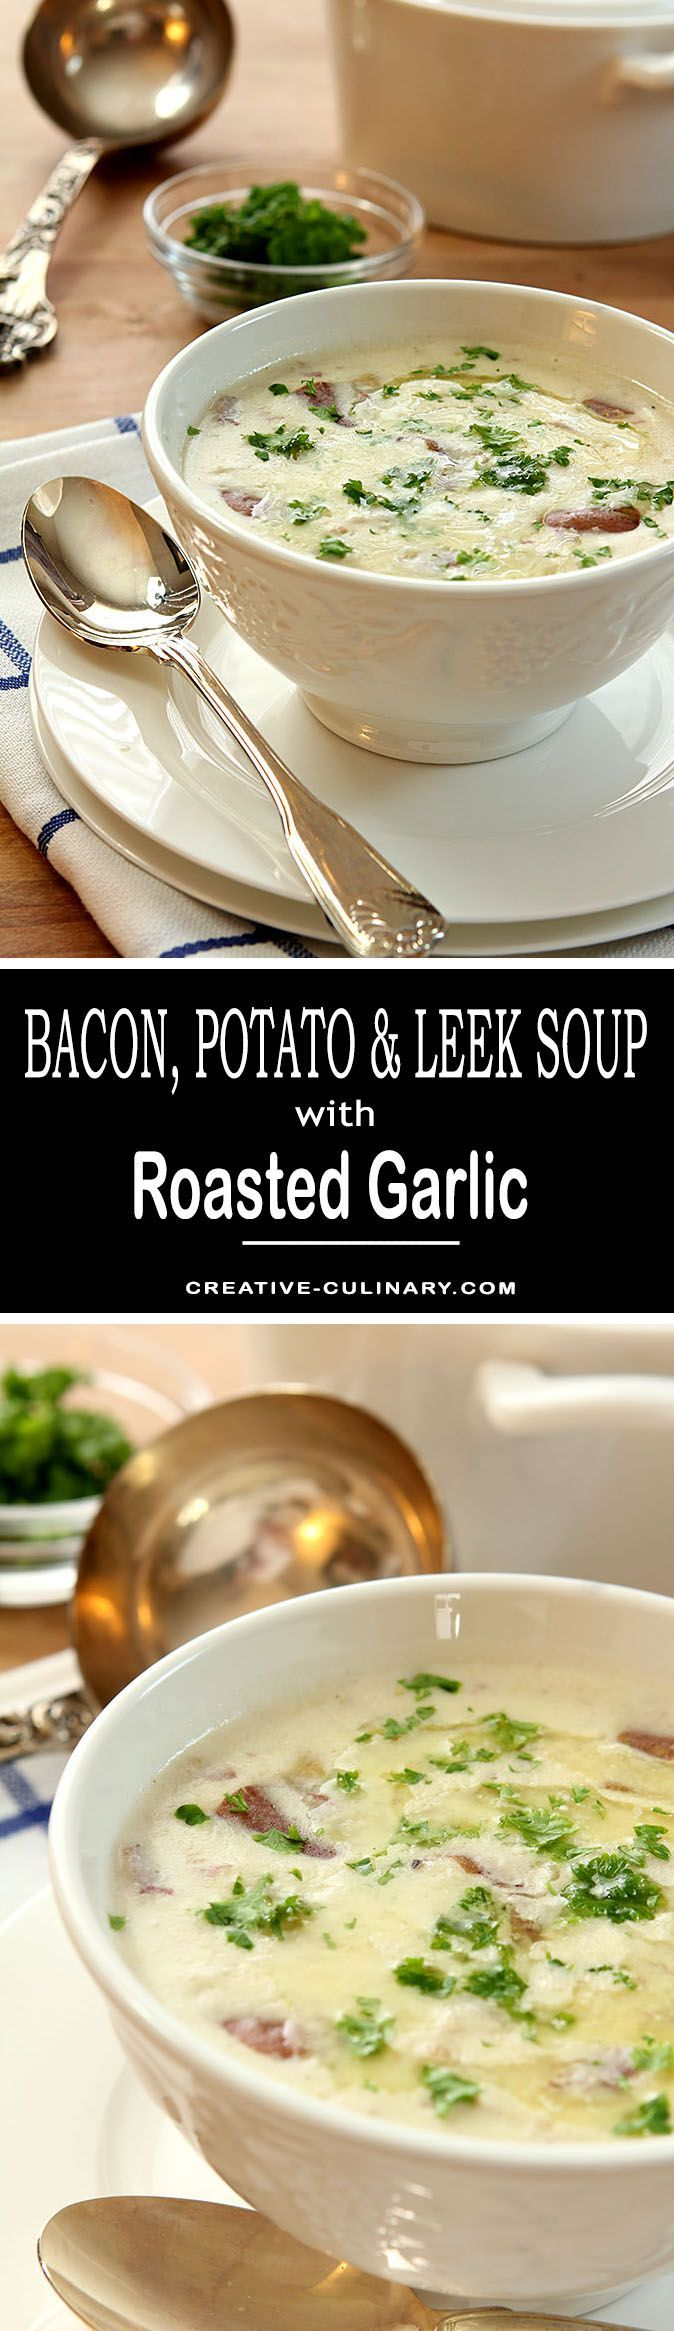 The perfect indulgence during cooler months; this Bacon, Potato and Leek Soup with Roasted Garlic is so warming and satisfying. via @creativculinary